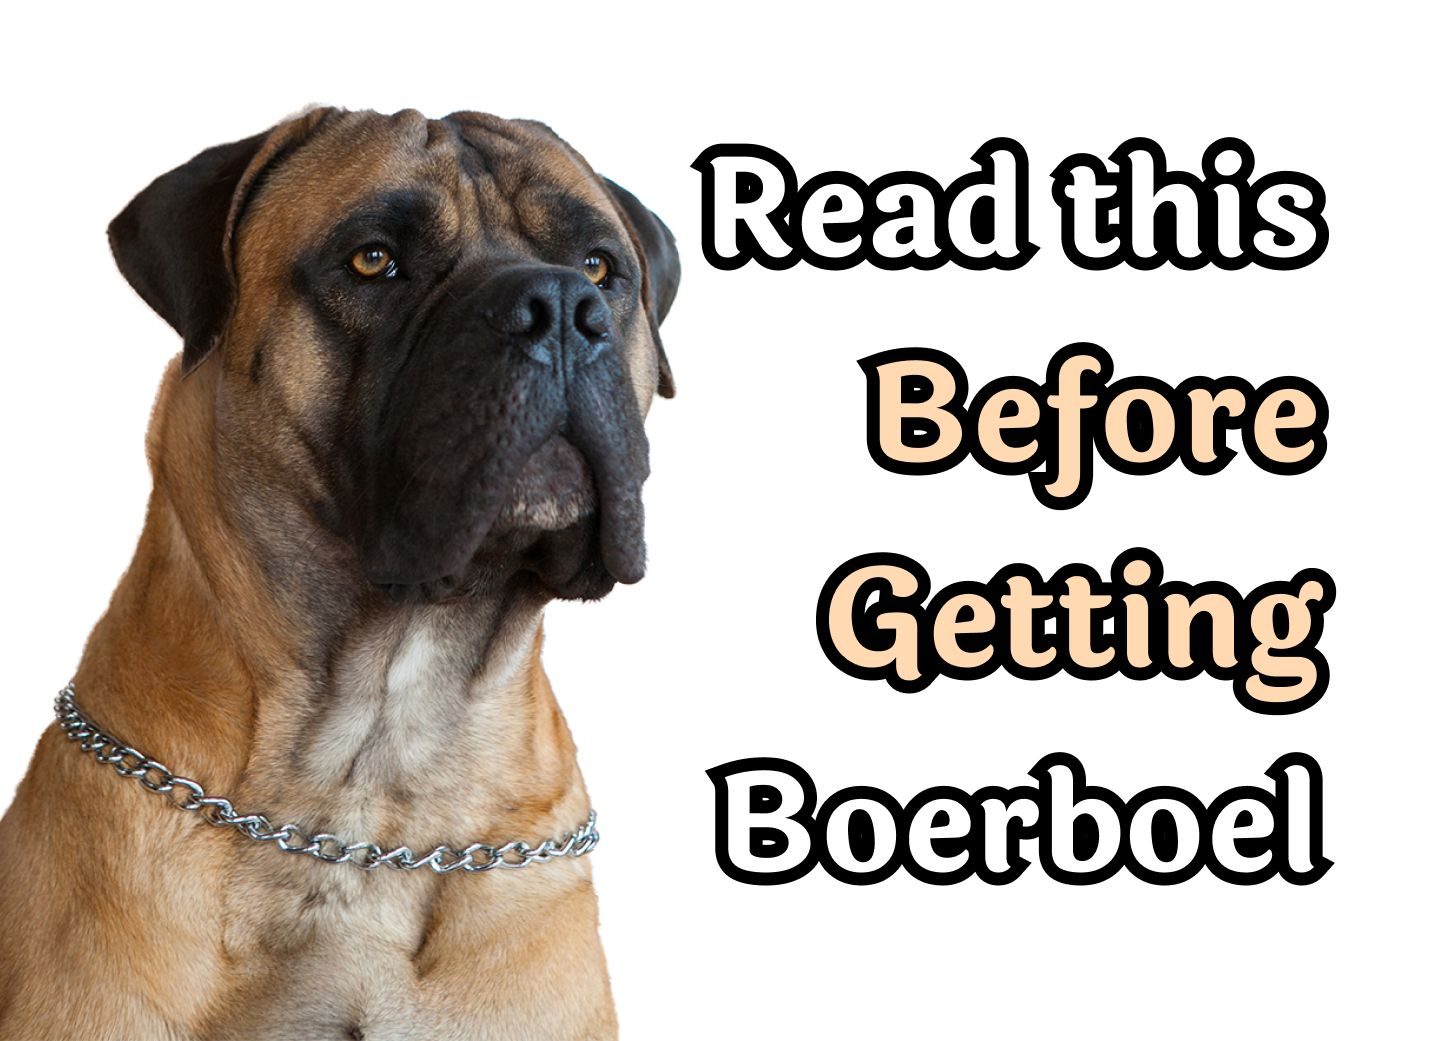 24 Questions То Consider Before Getting A Boerboel